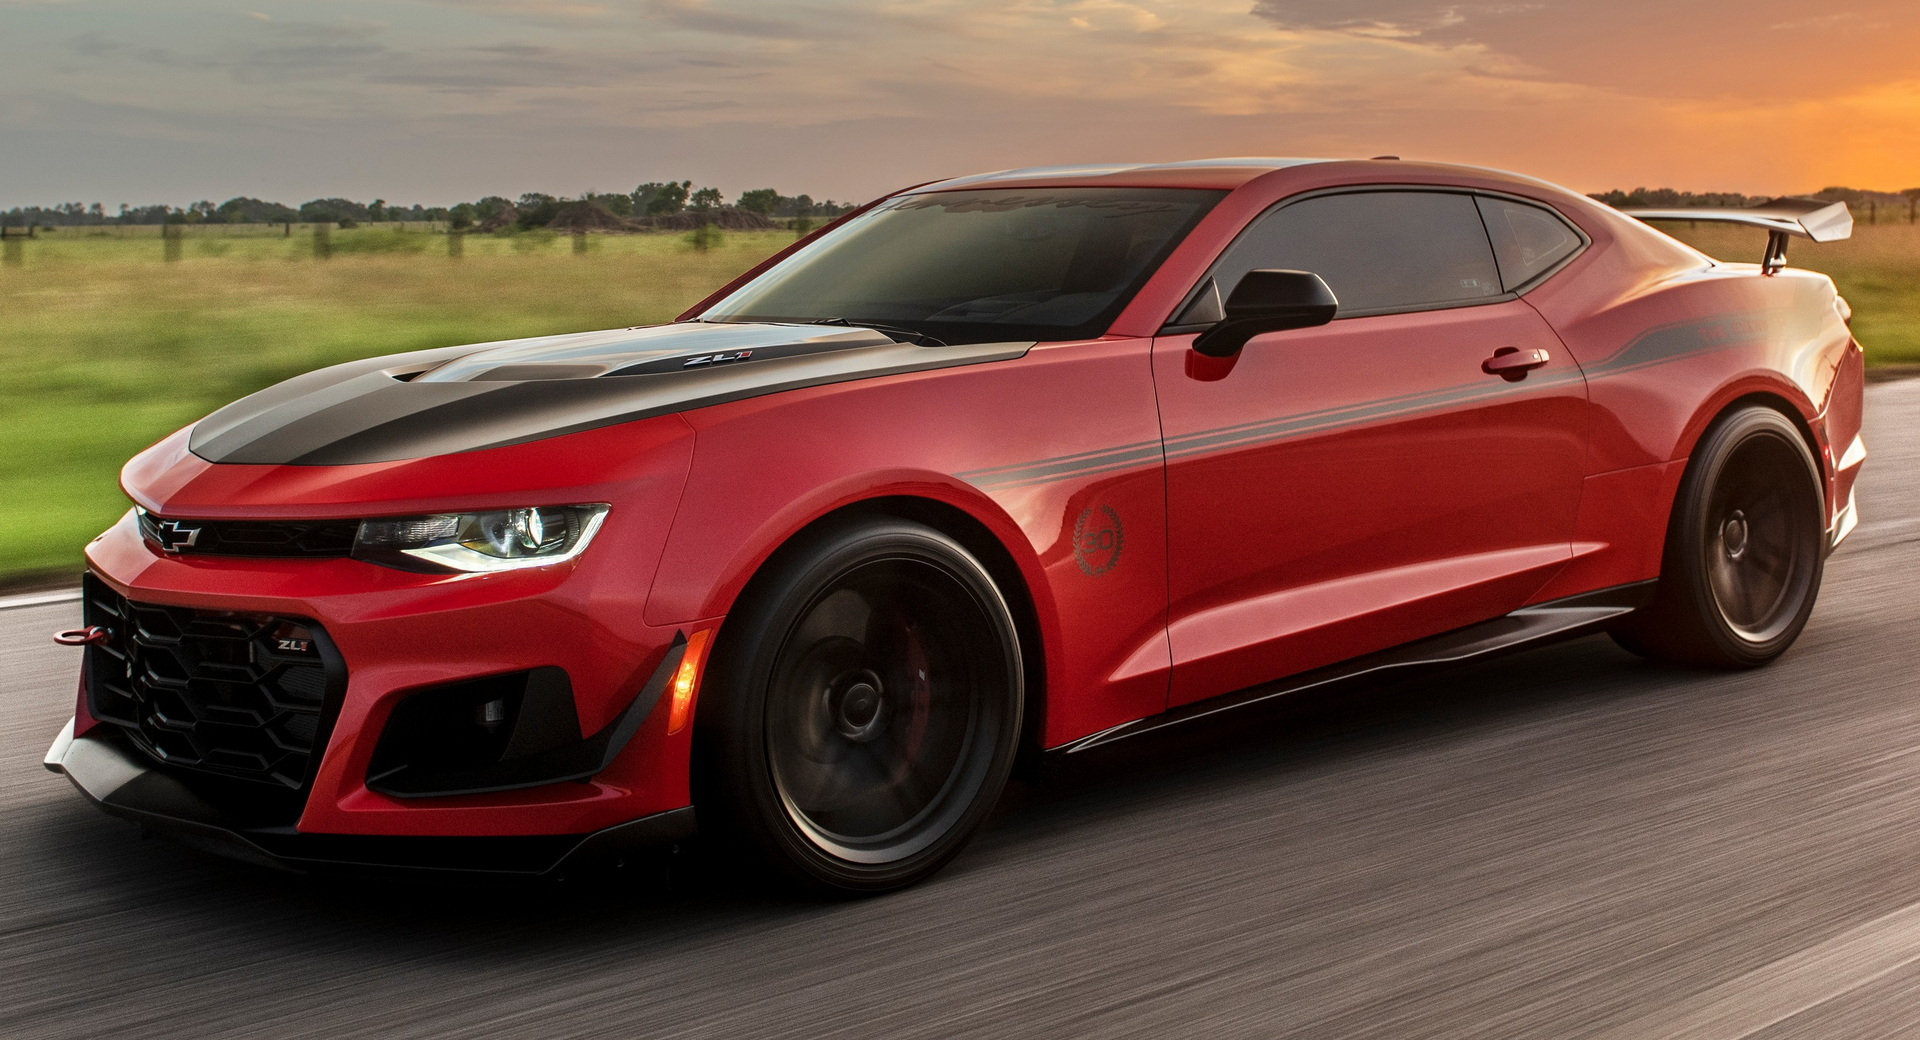 """Hennessey Performance wil turn 30 soon, and it will be releasing 30 exclusive Chevrolet Camarо """"The Exorcist"""" coupes tuned to the hilt to celebrate the occasion."""